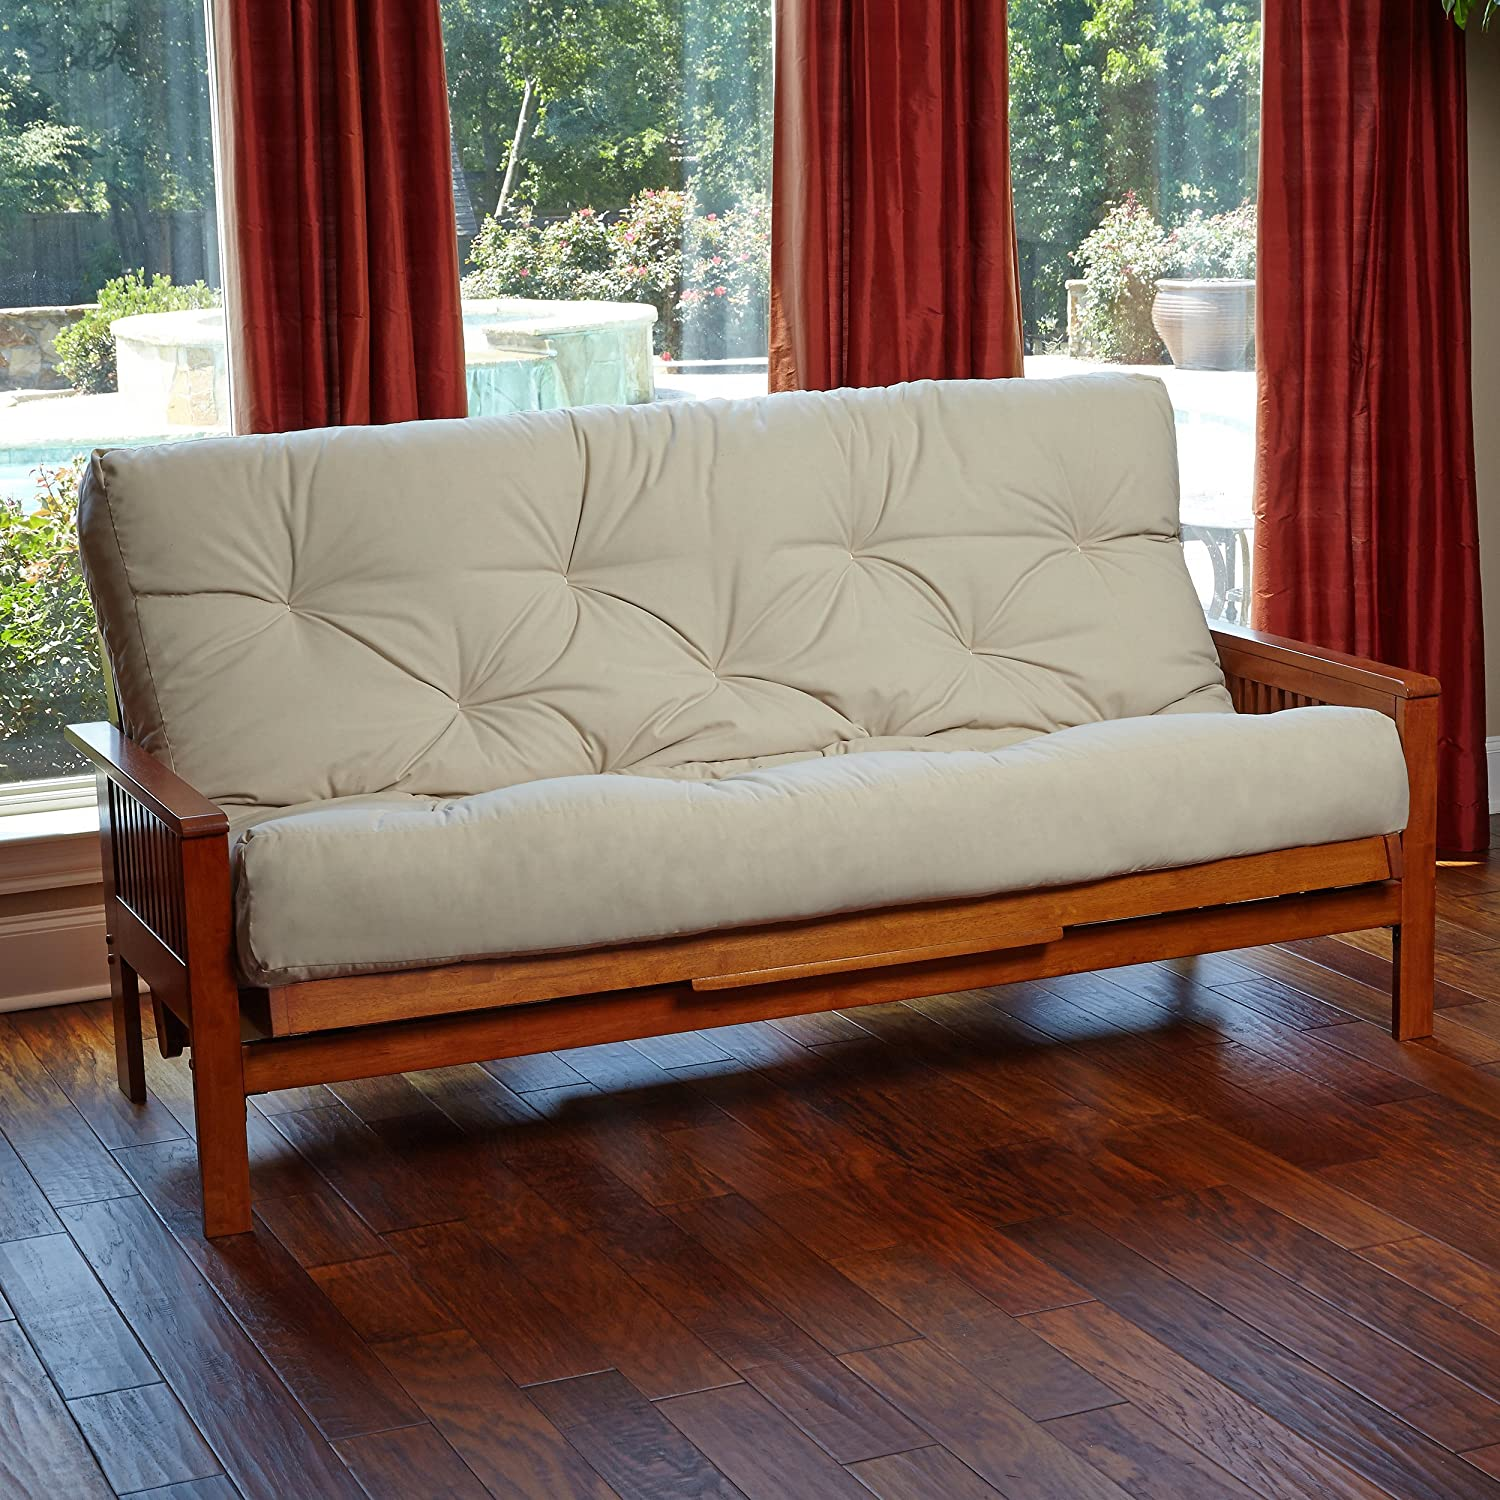 5 Best Queen Size Futon Mattress Of 2019